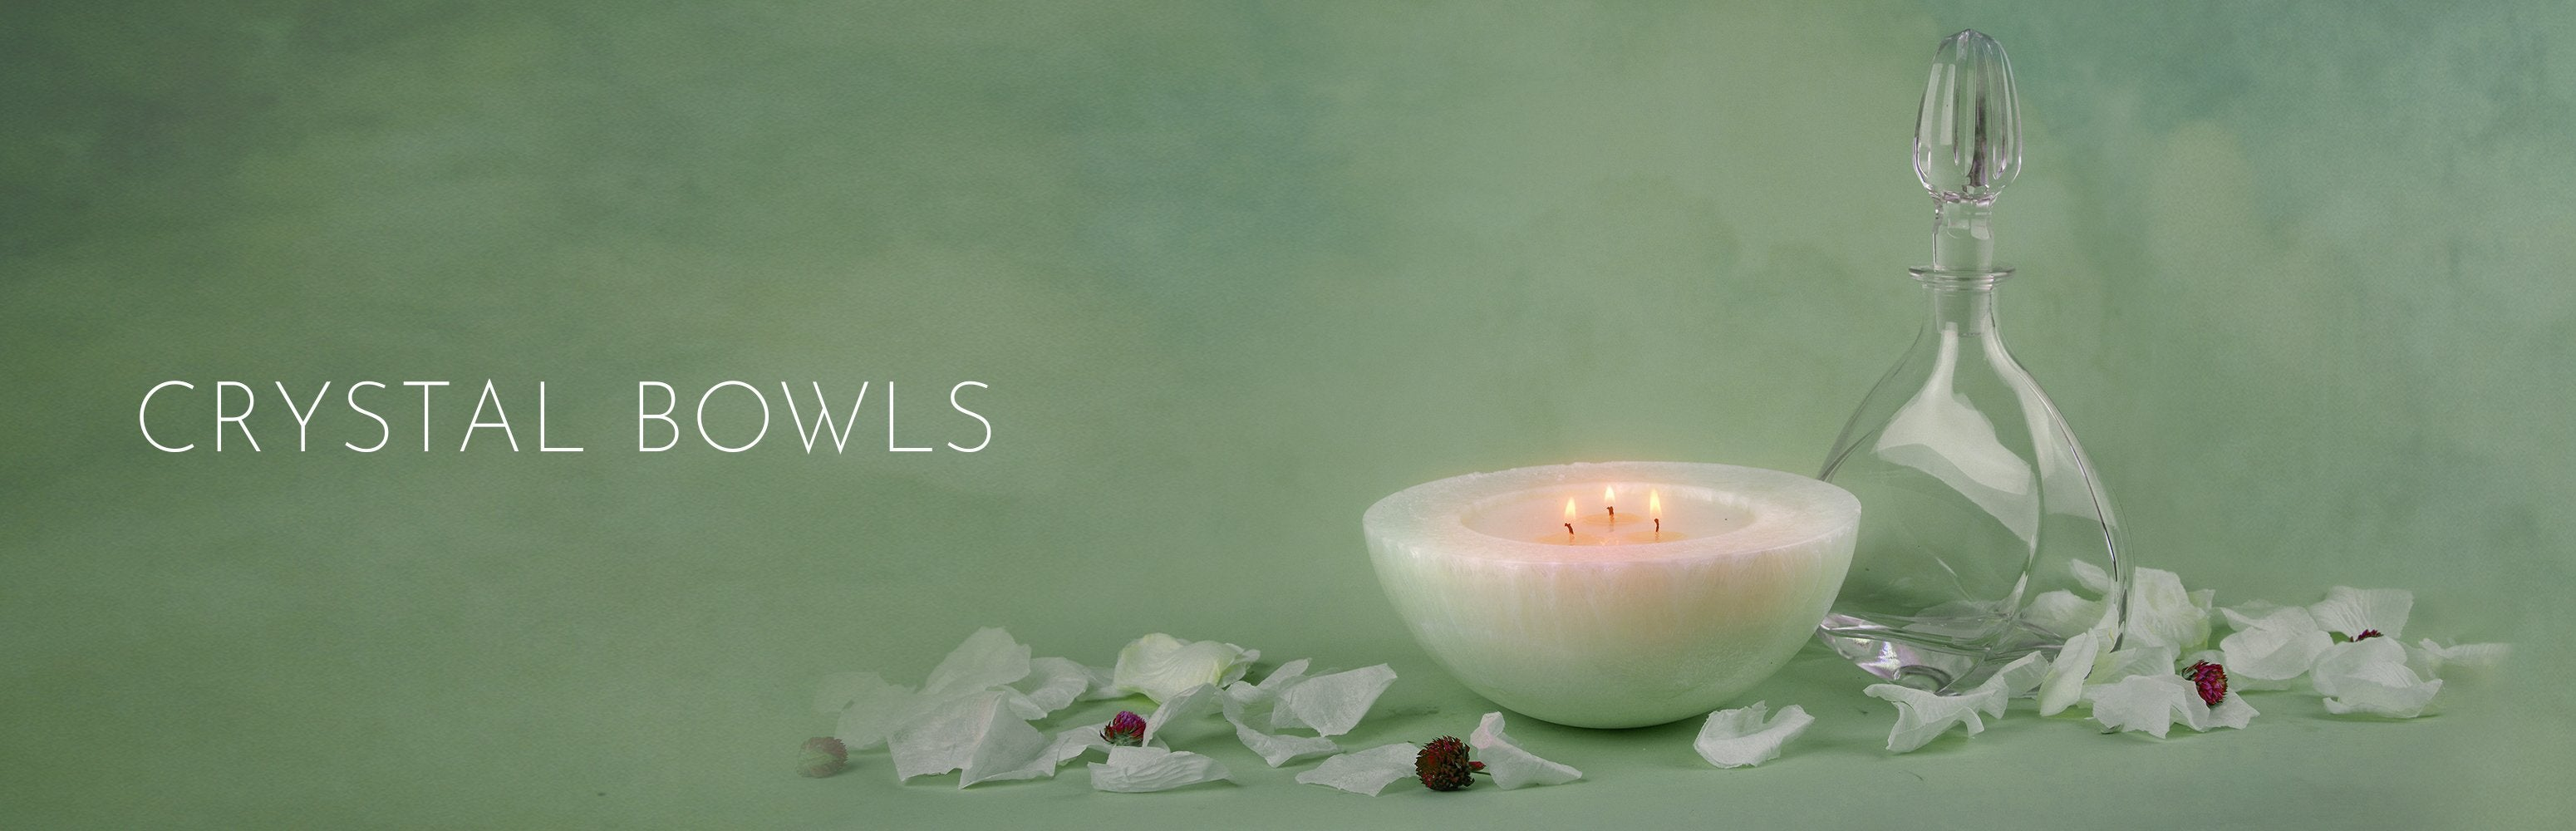 Stone Candles Crystal Bowl Collection Banner